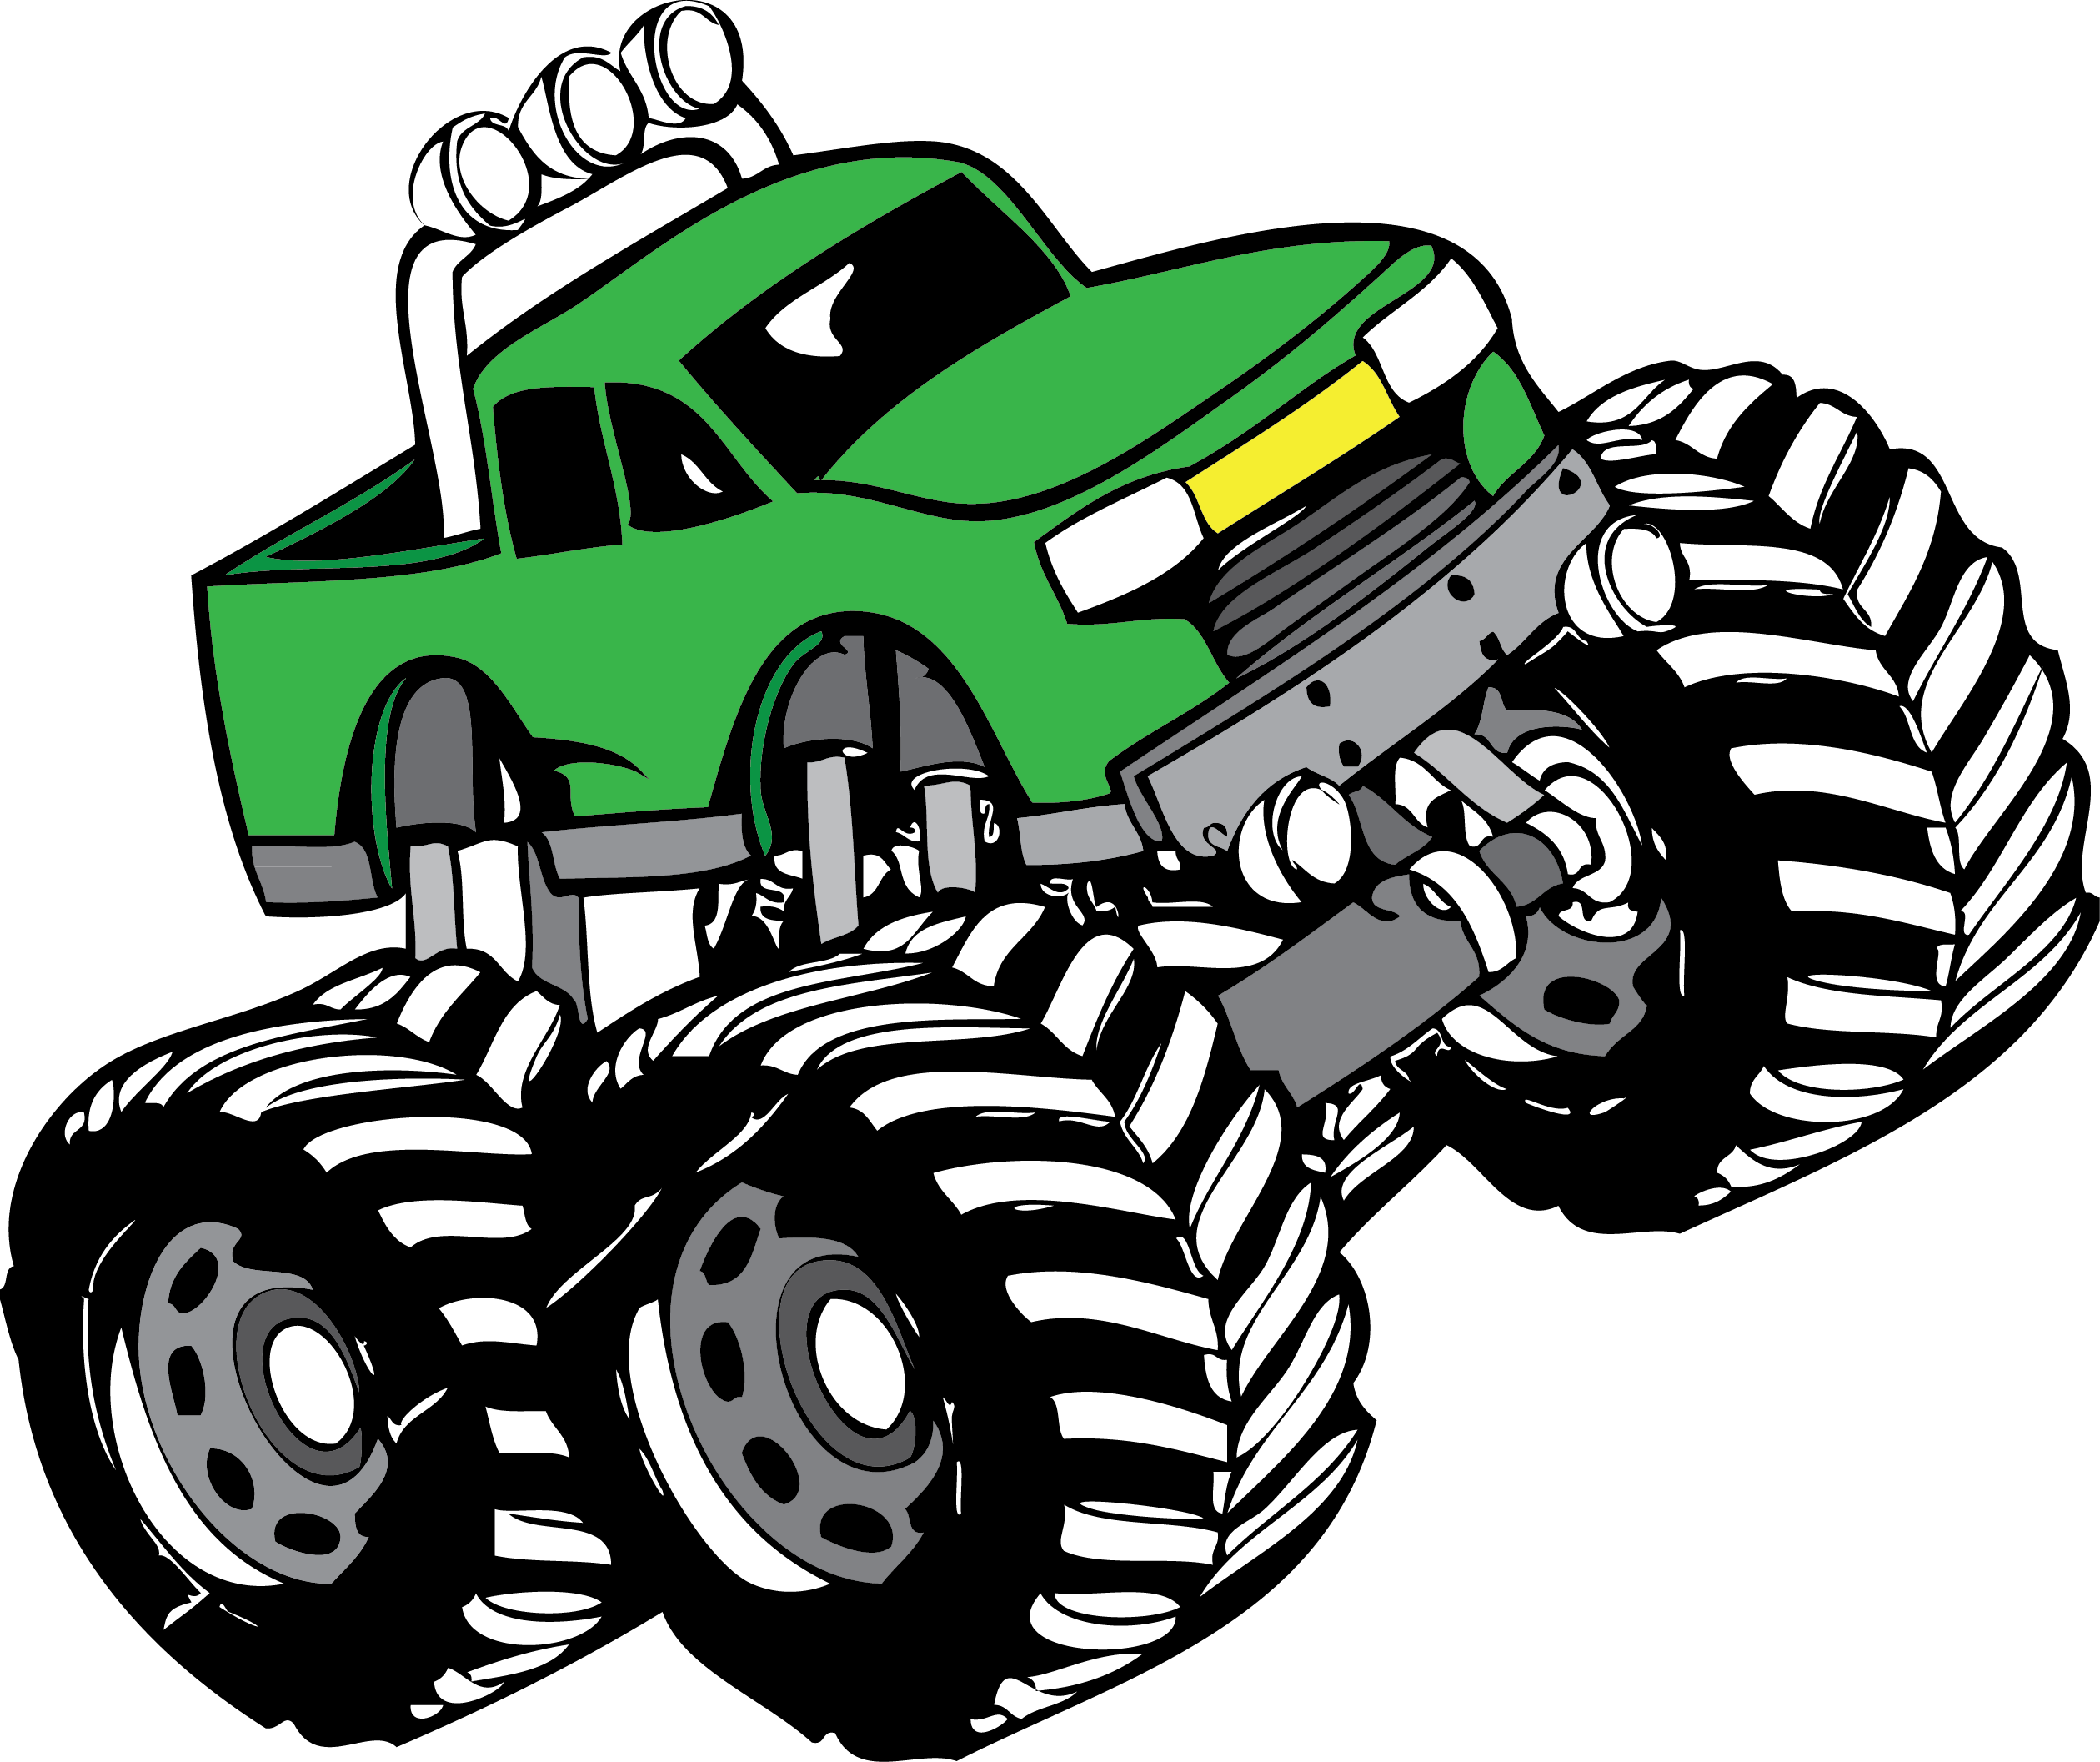 monster truck clip art 24343 monster trucks pinterest monster rh pinterest com blaze monster truck clipart monster truck clipart png